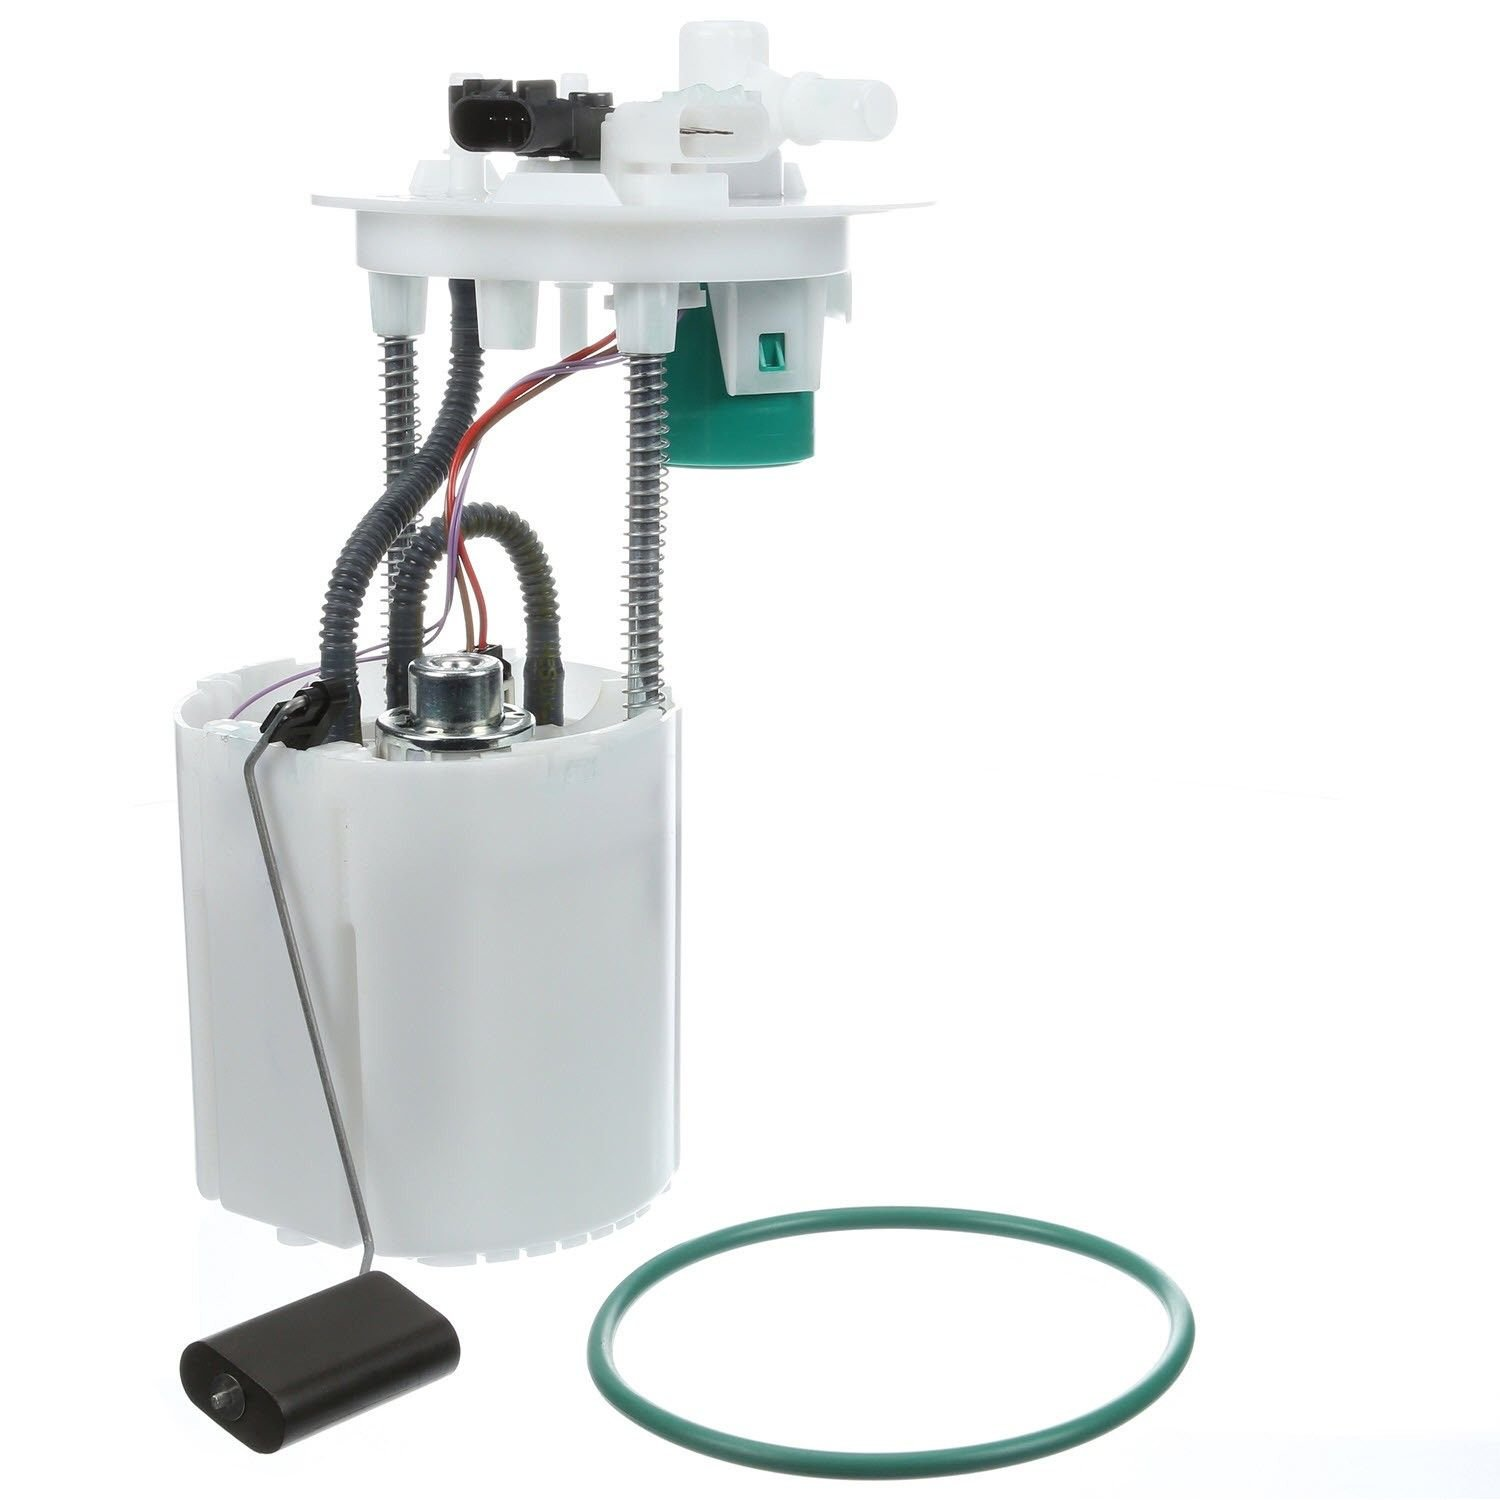 Buick LaCrosse Fuel Pump Module Assembly Replacement